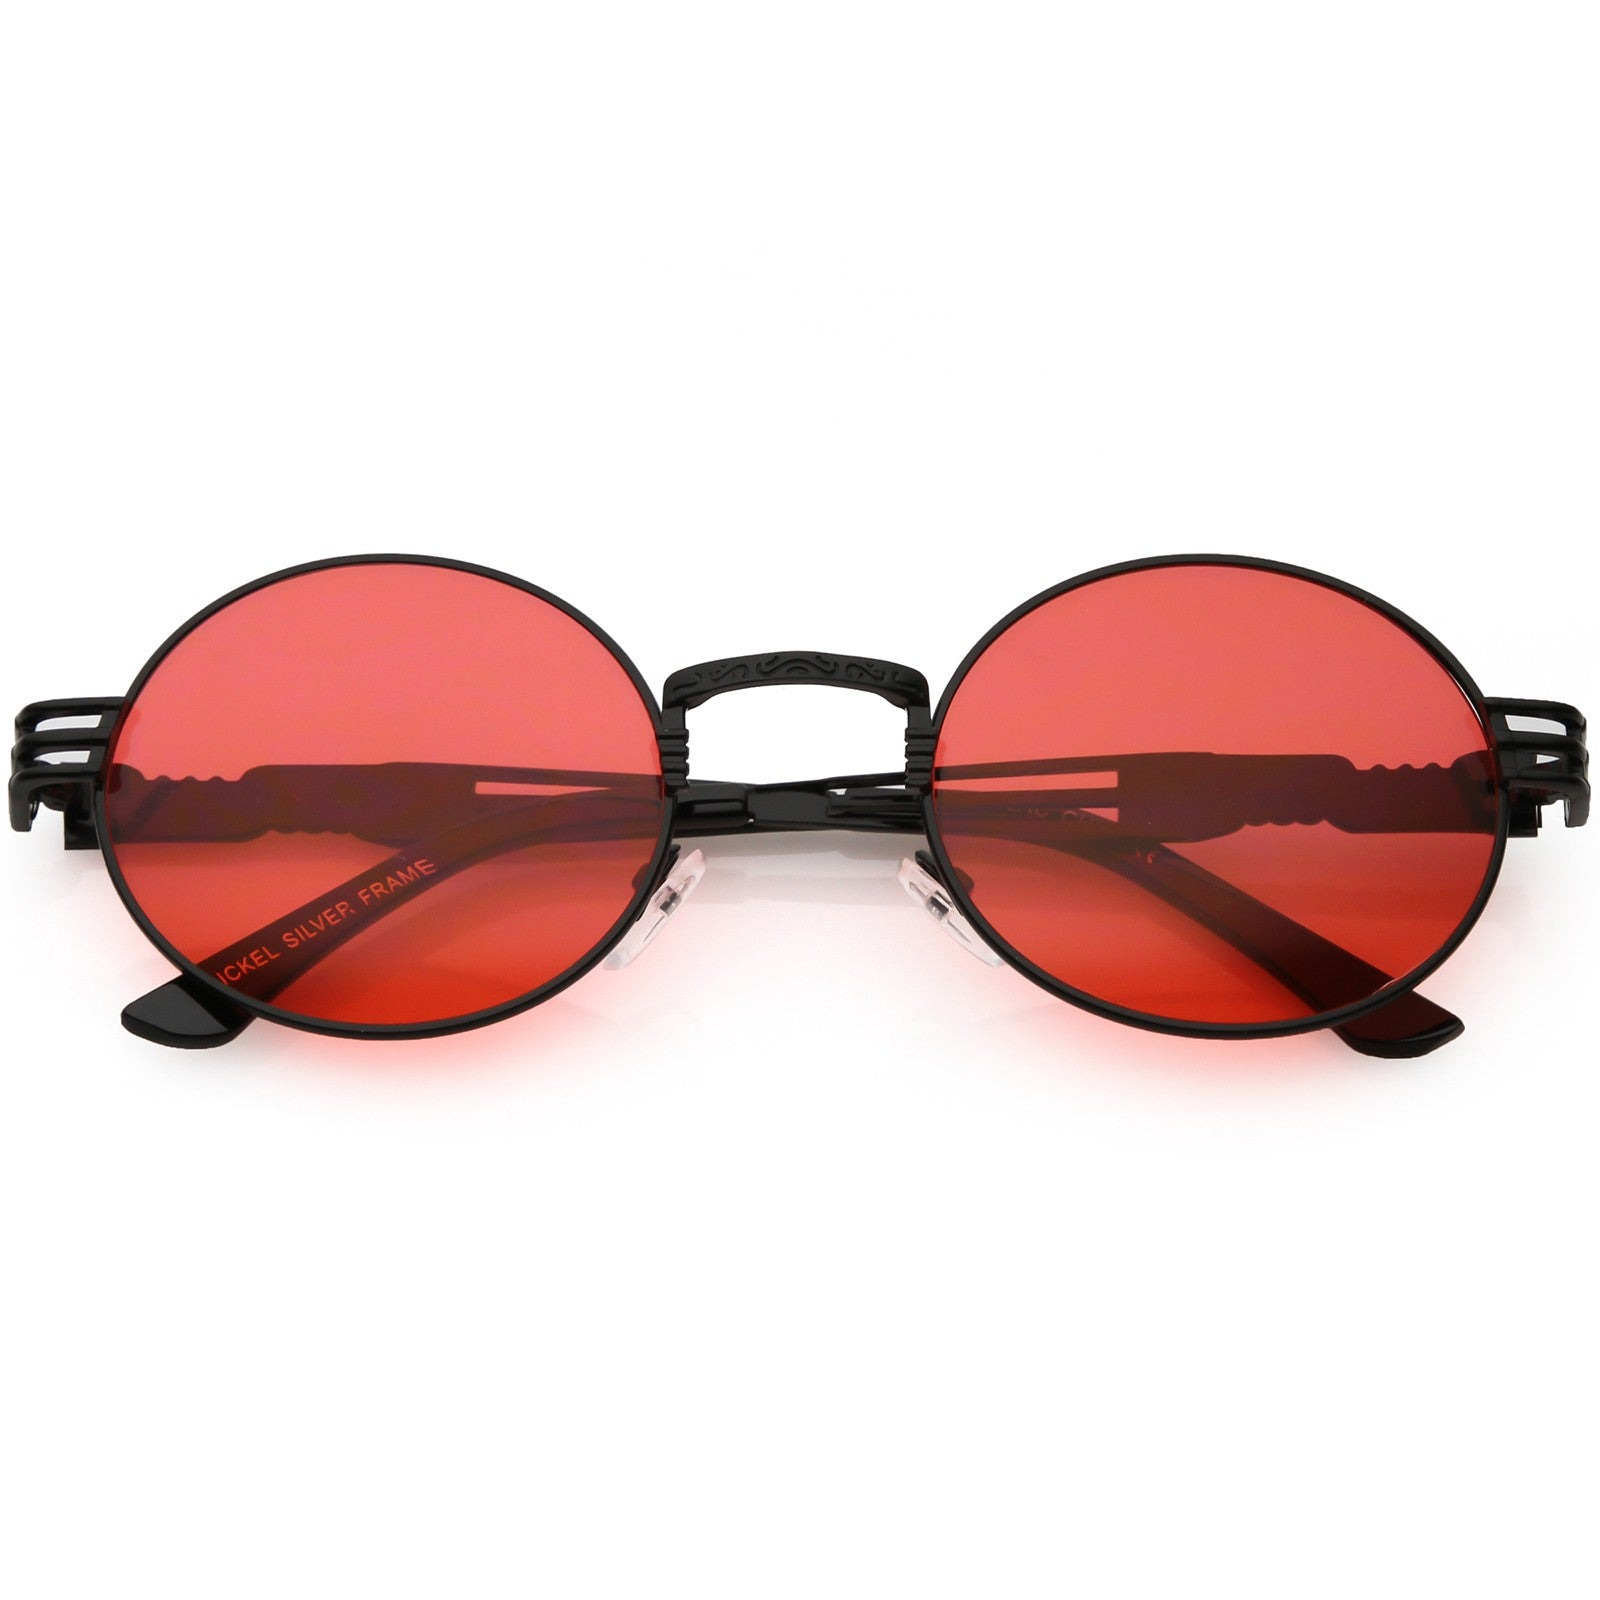 Oval Sunglasses 60mm